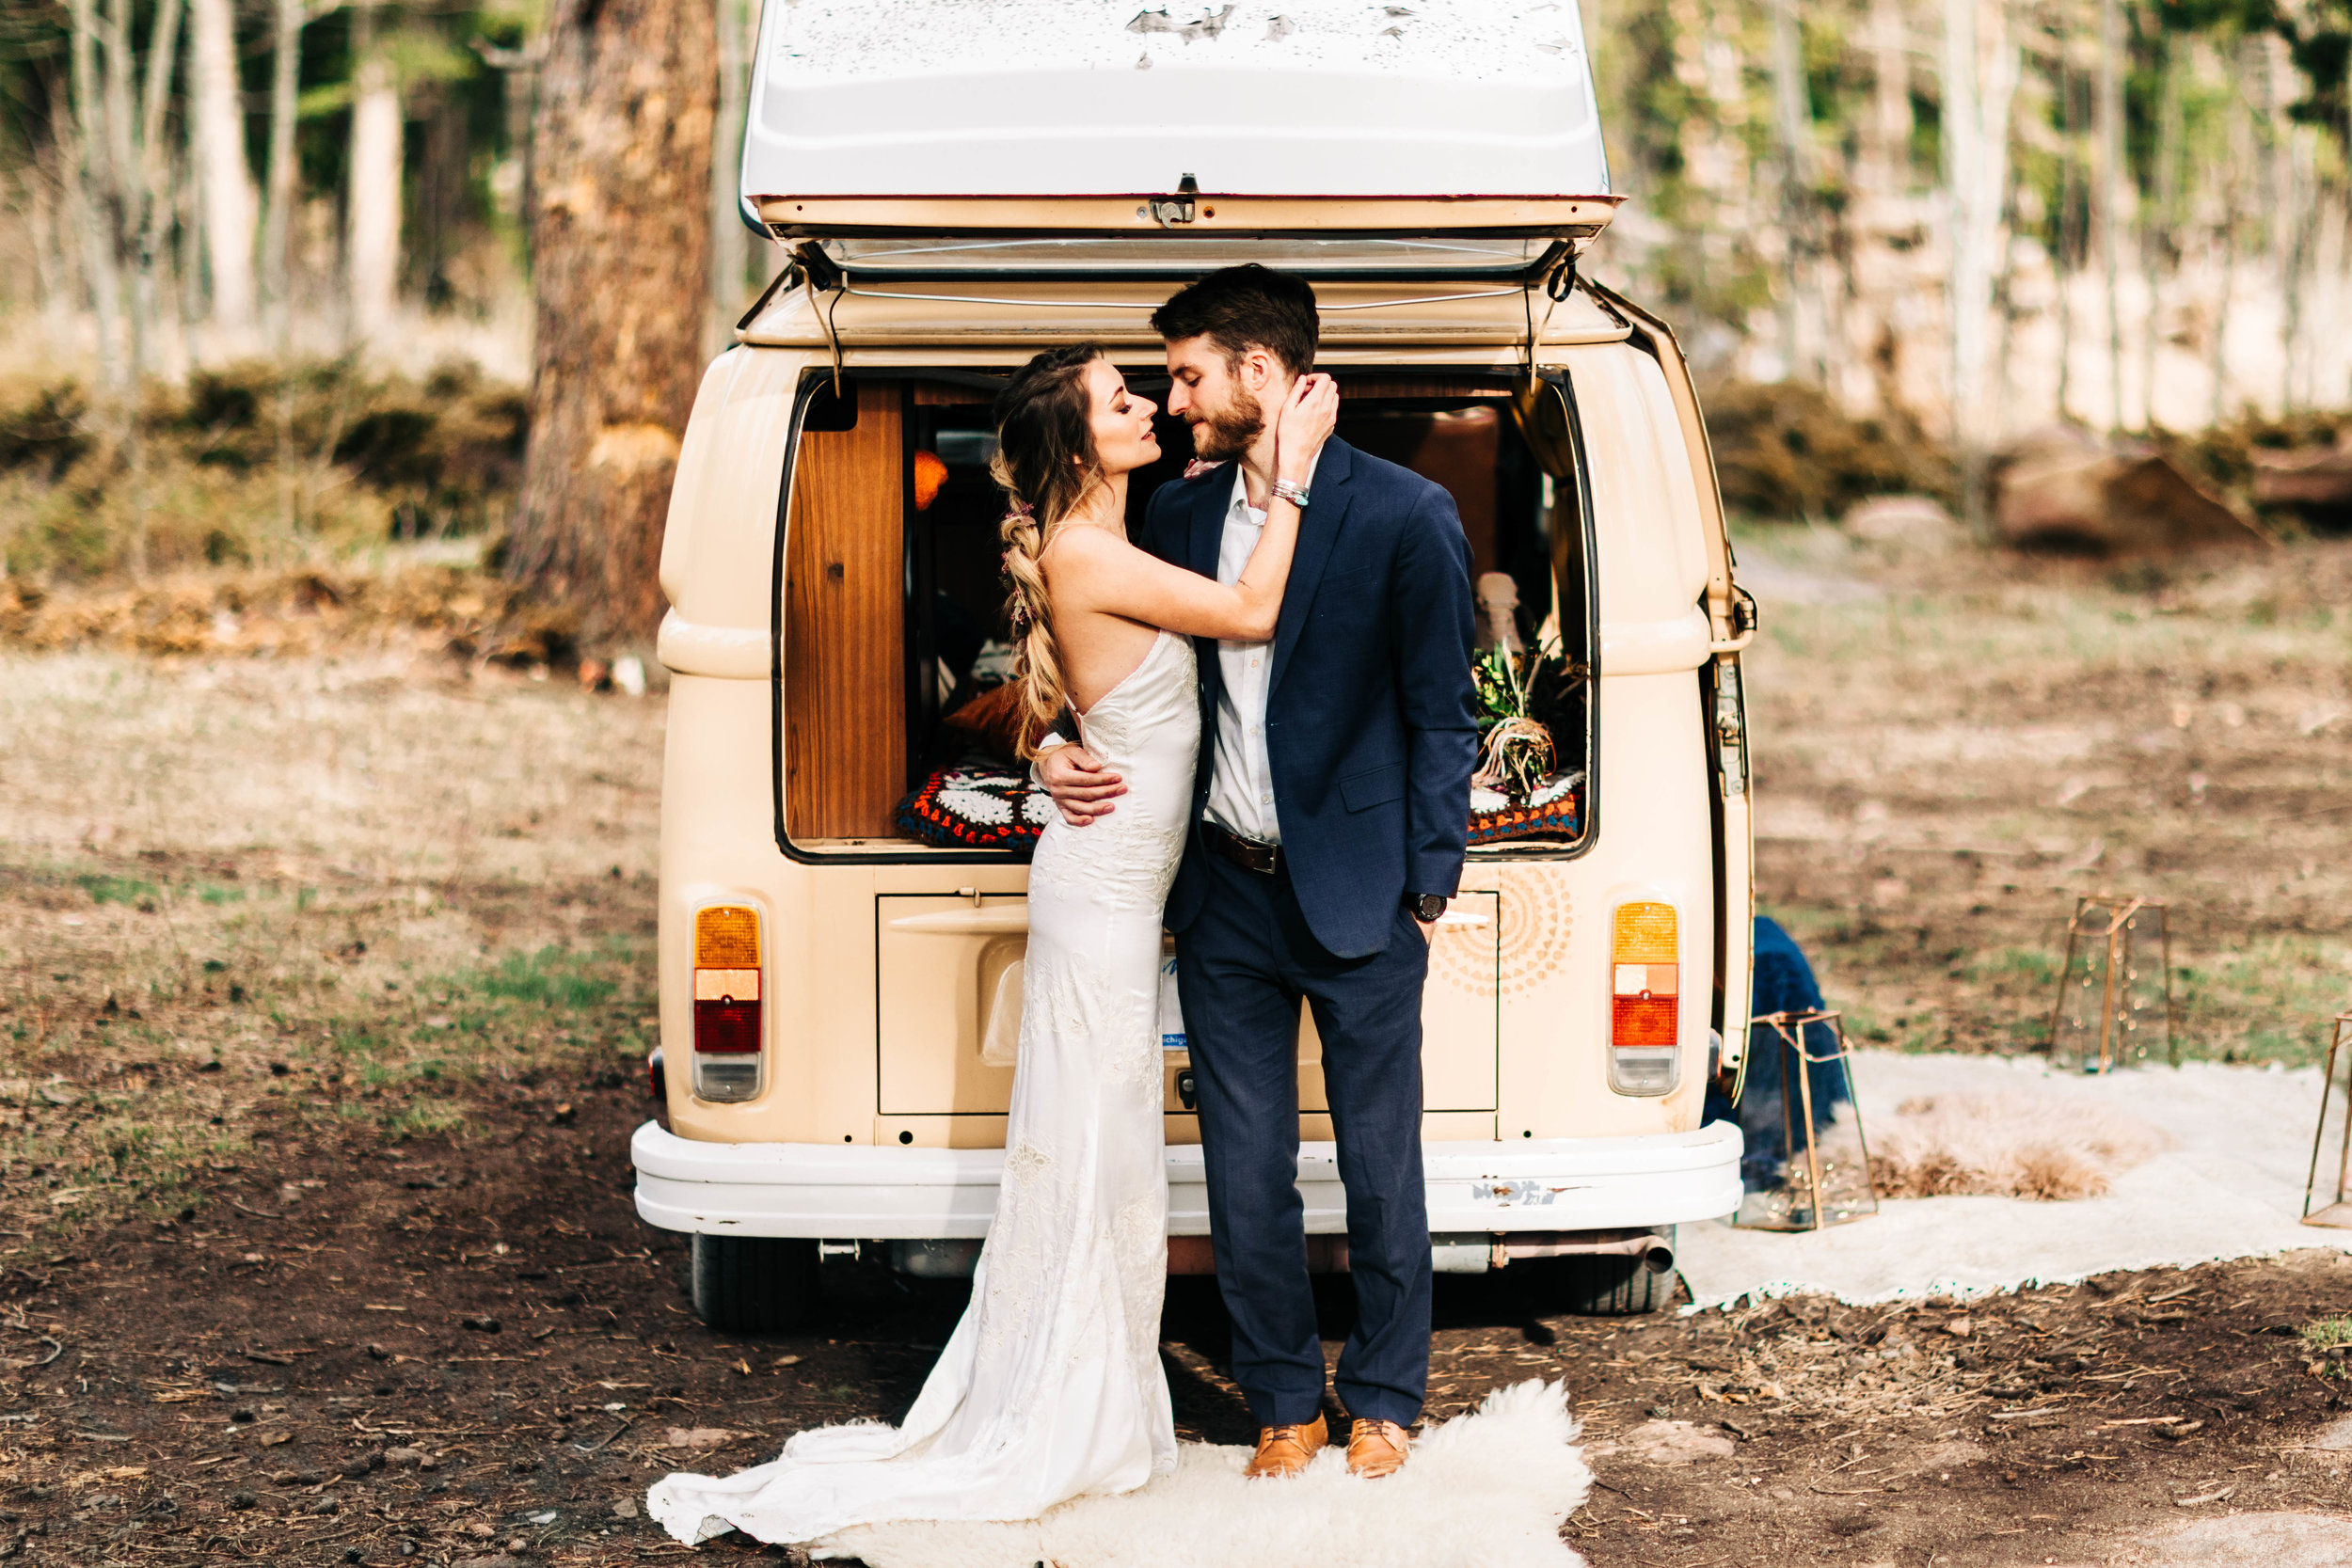 camper van elopement in the Rocky Mountains of Colorado | adventure wedding photographers